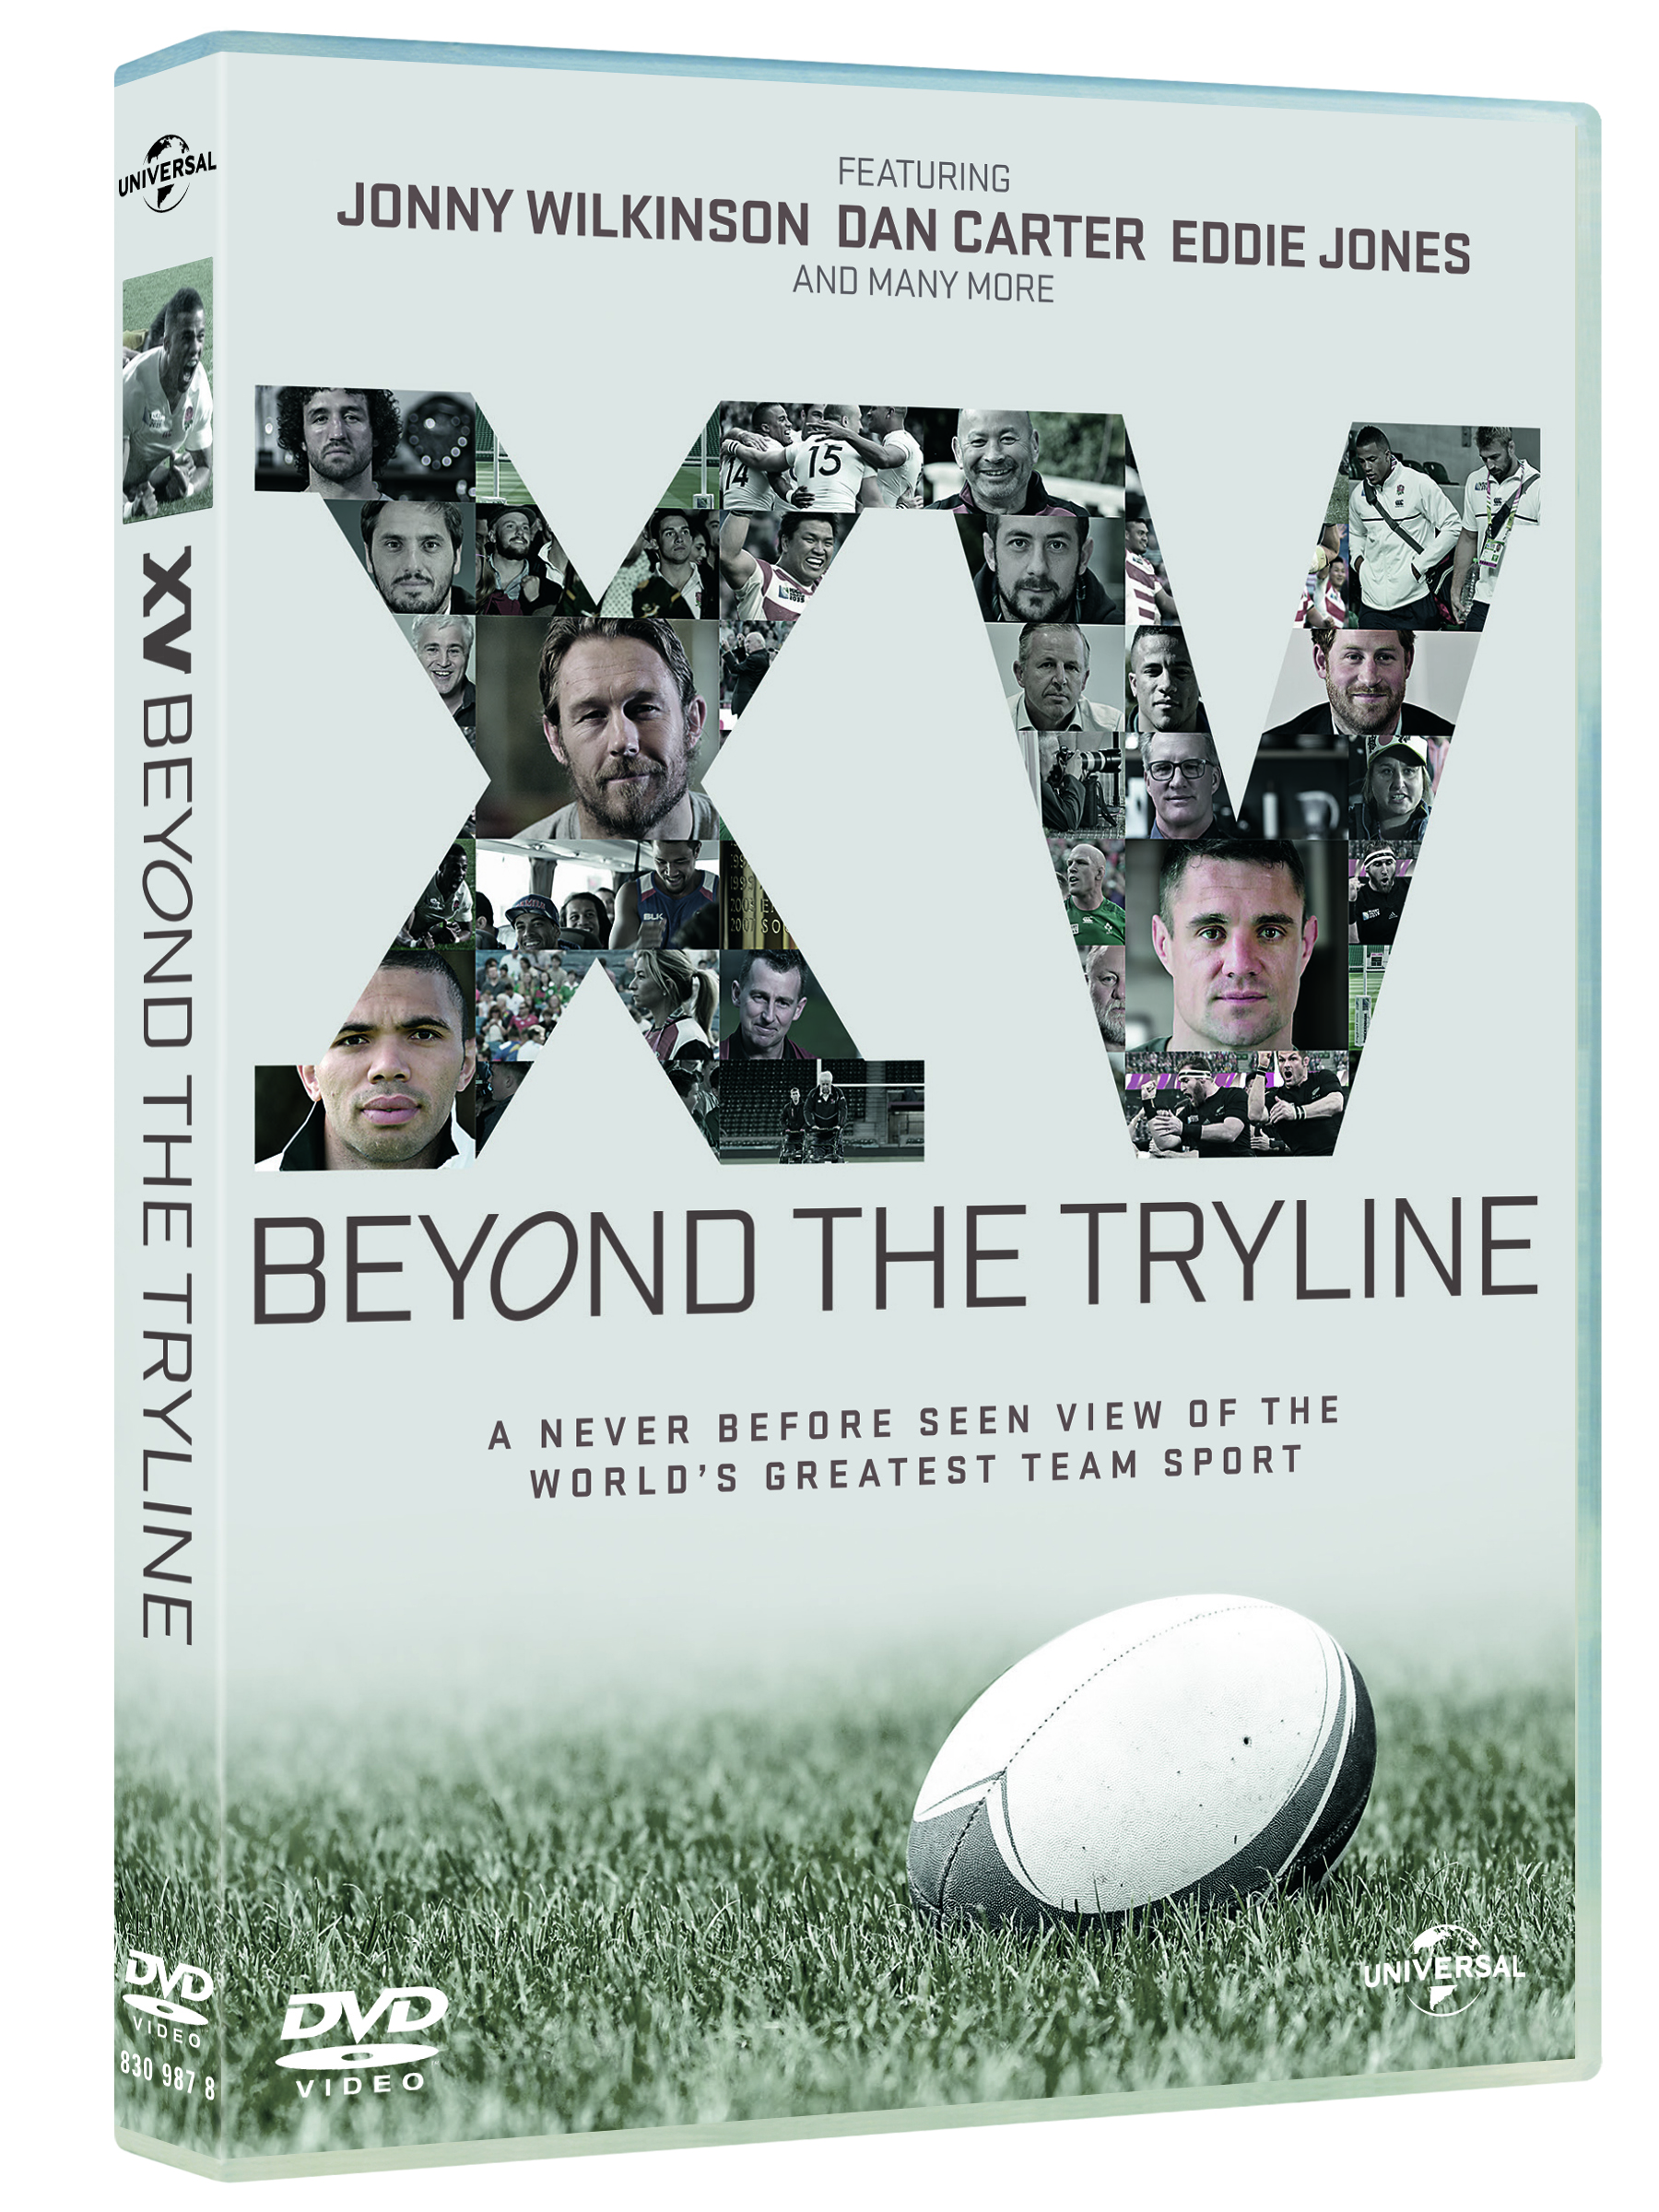 8309878-11-beyond-the-tryline-uk-dvd-retail-sleeve_3pa